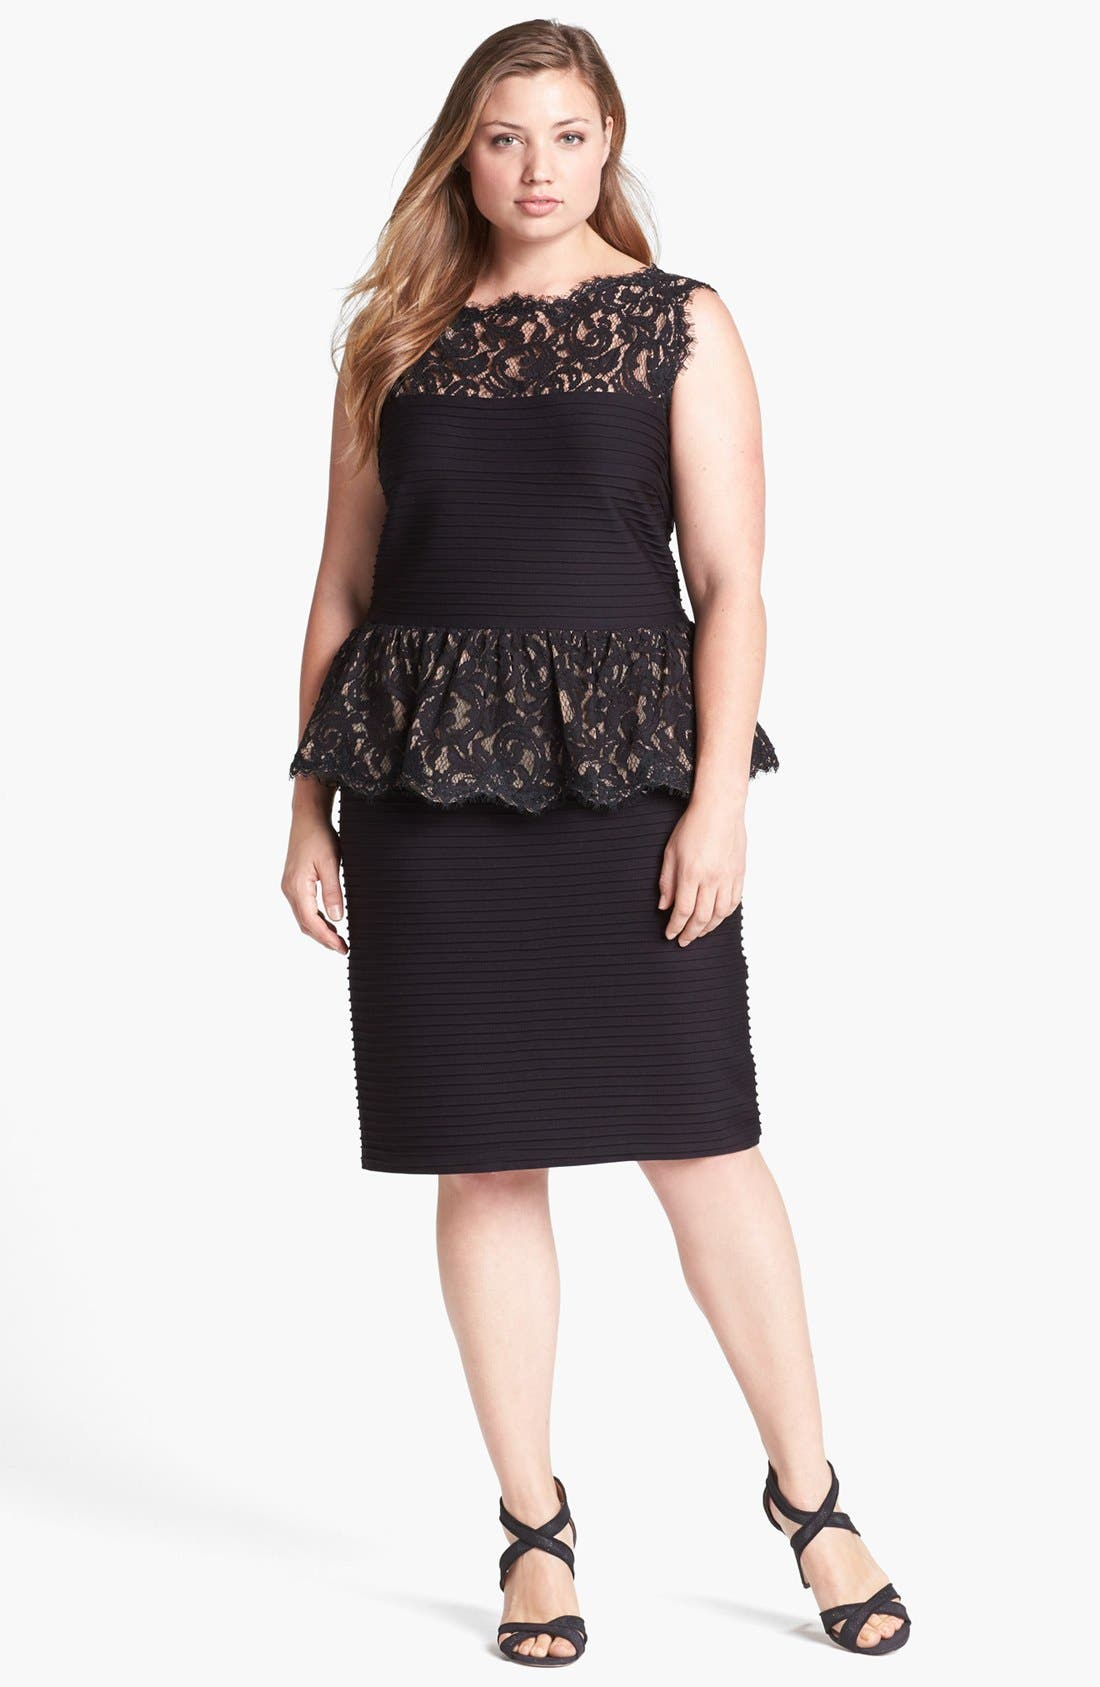 Alternate Image 1 Selected - Tadashi Shoji Lace & Jersey Peplum Dress (Plus Size)